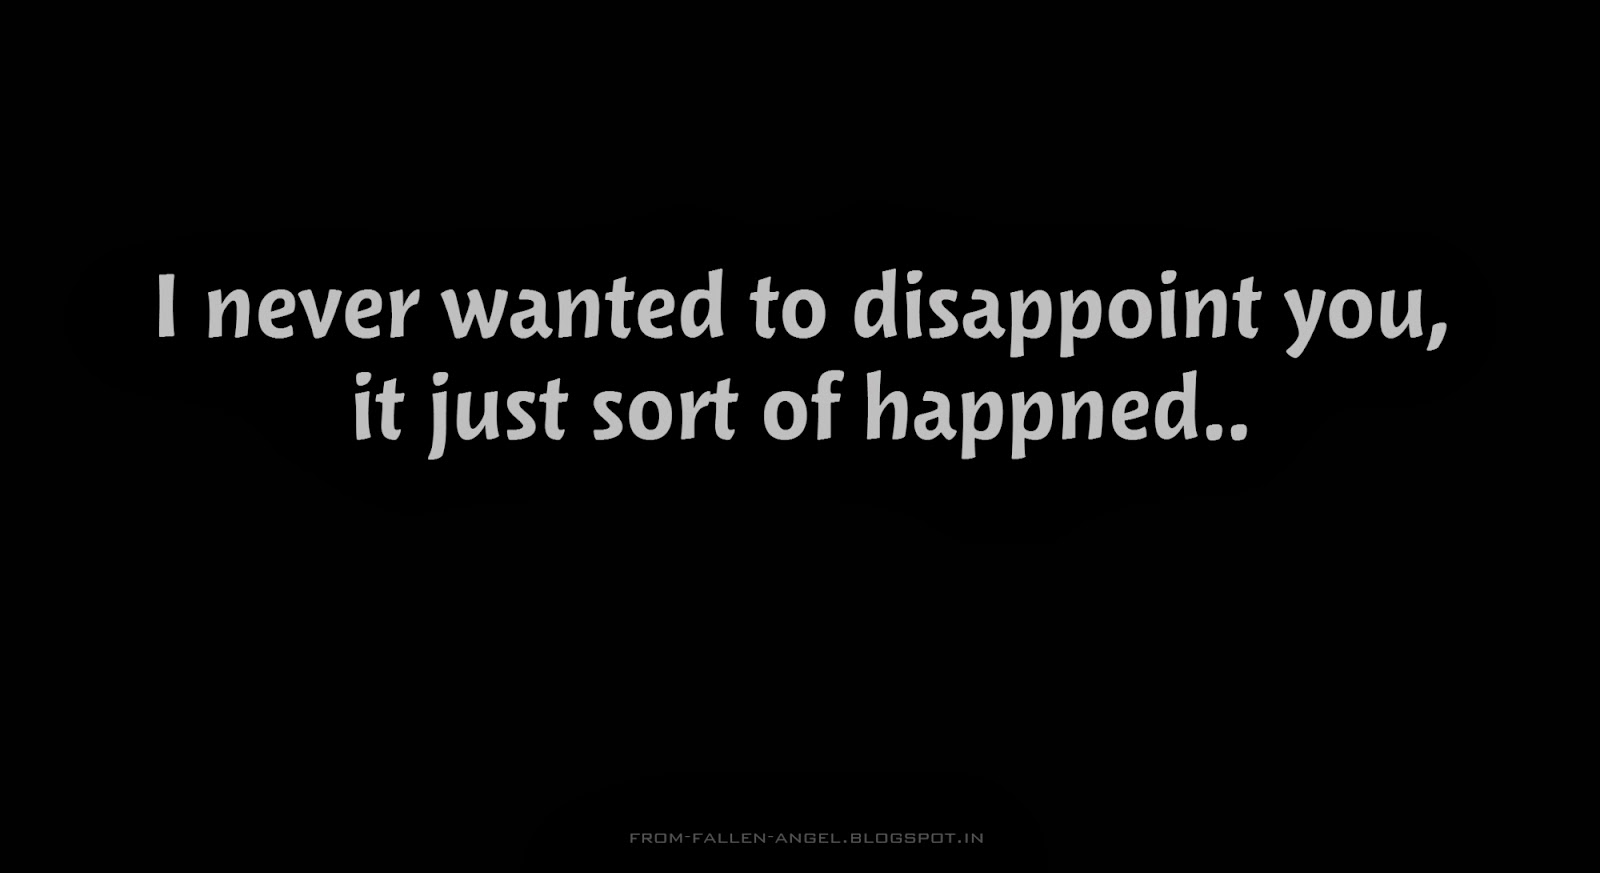 I never wanted to disappoint you, it just sort of happned..